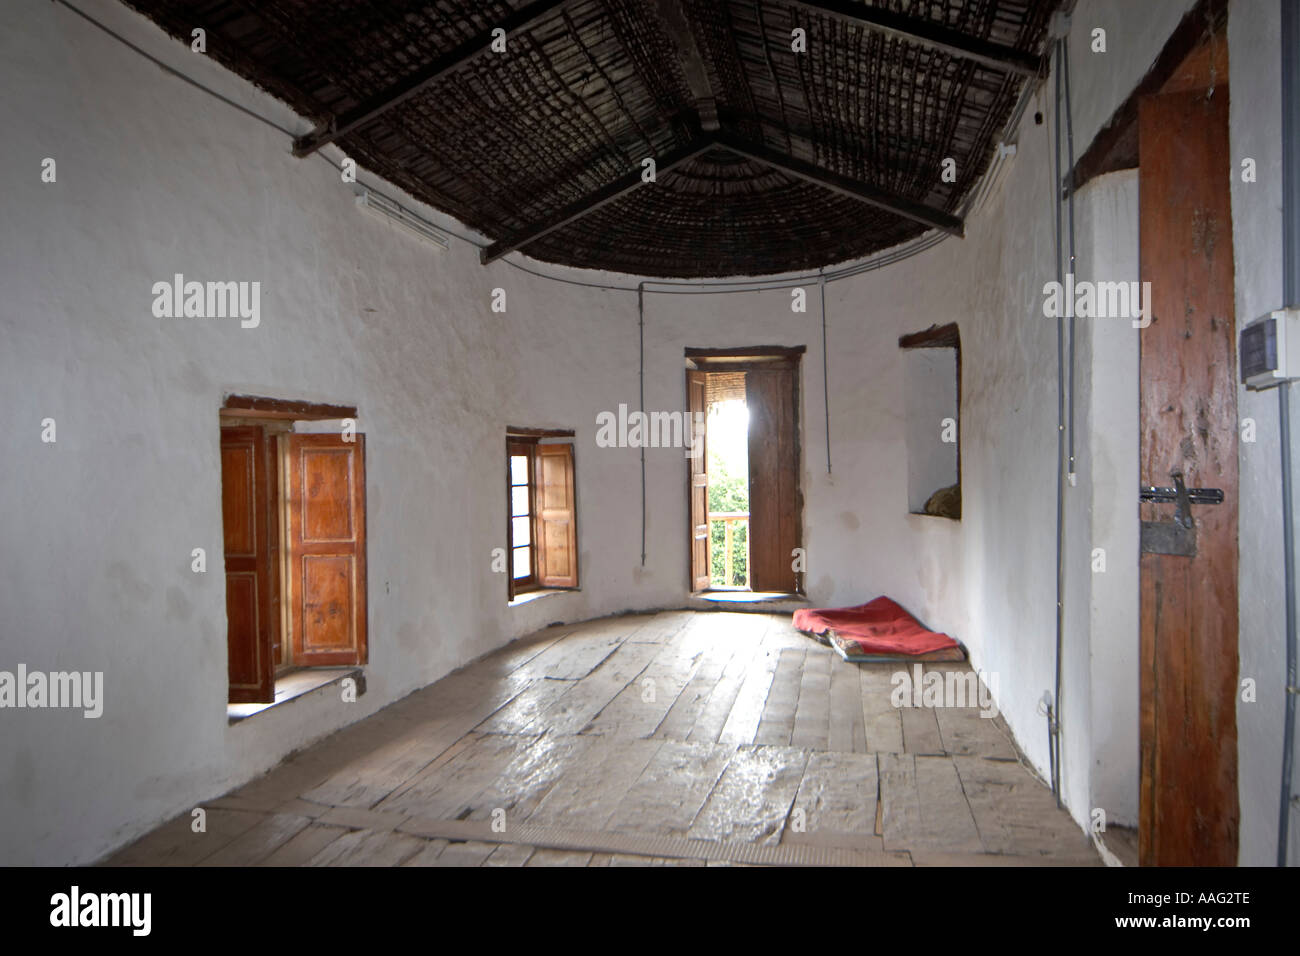 House design ethiopia - Guest House Interior Of Emperor Menelik S Old Palace In Entoto Hills Above Addis Ababa Ethiopia Africa